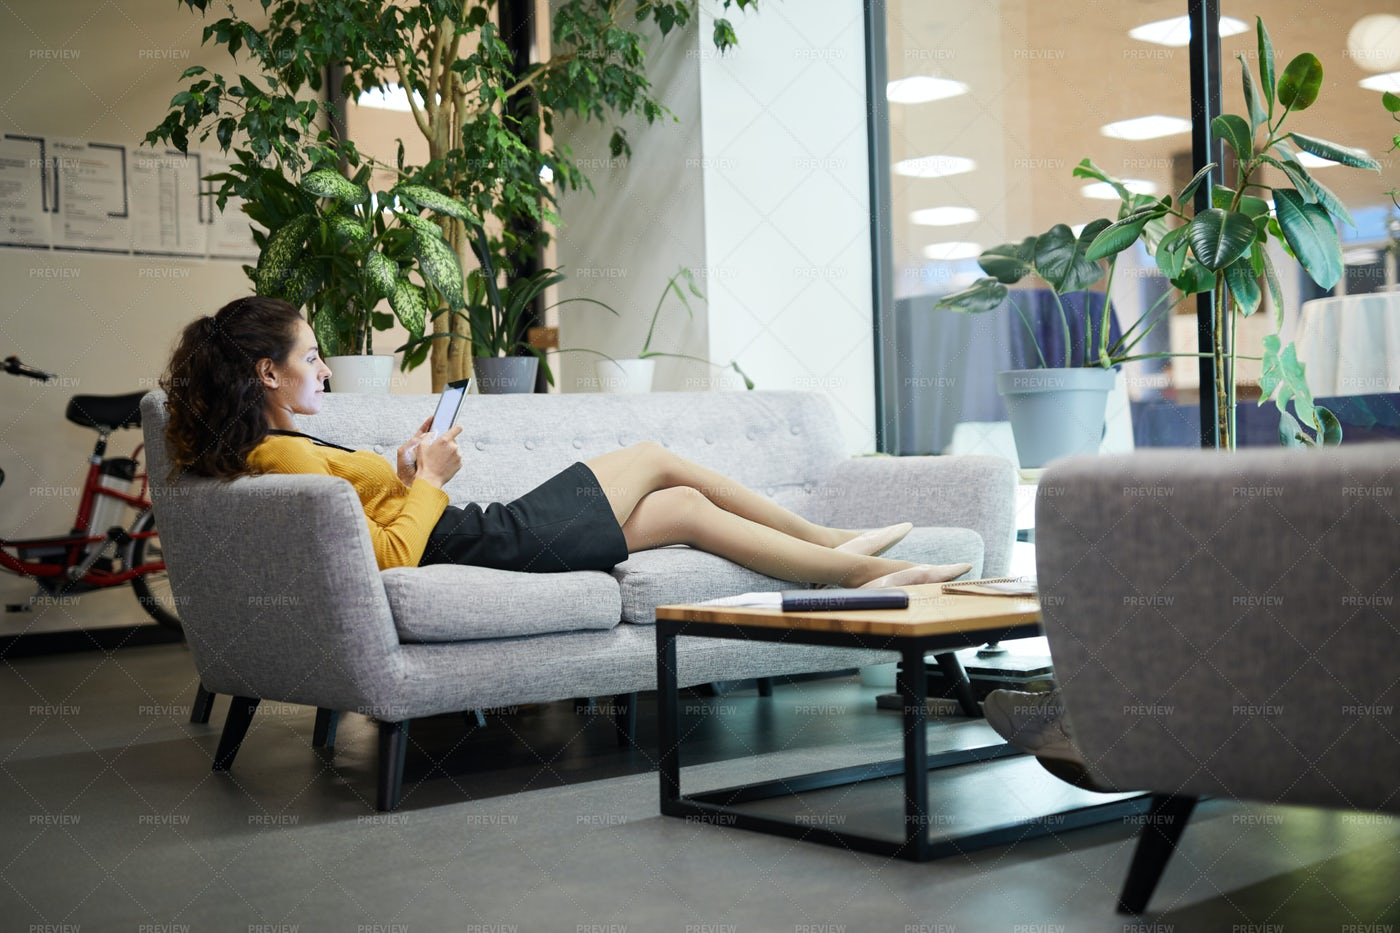 Relaxed Lady Reading Online Article...: Stock Photos